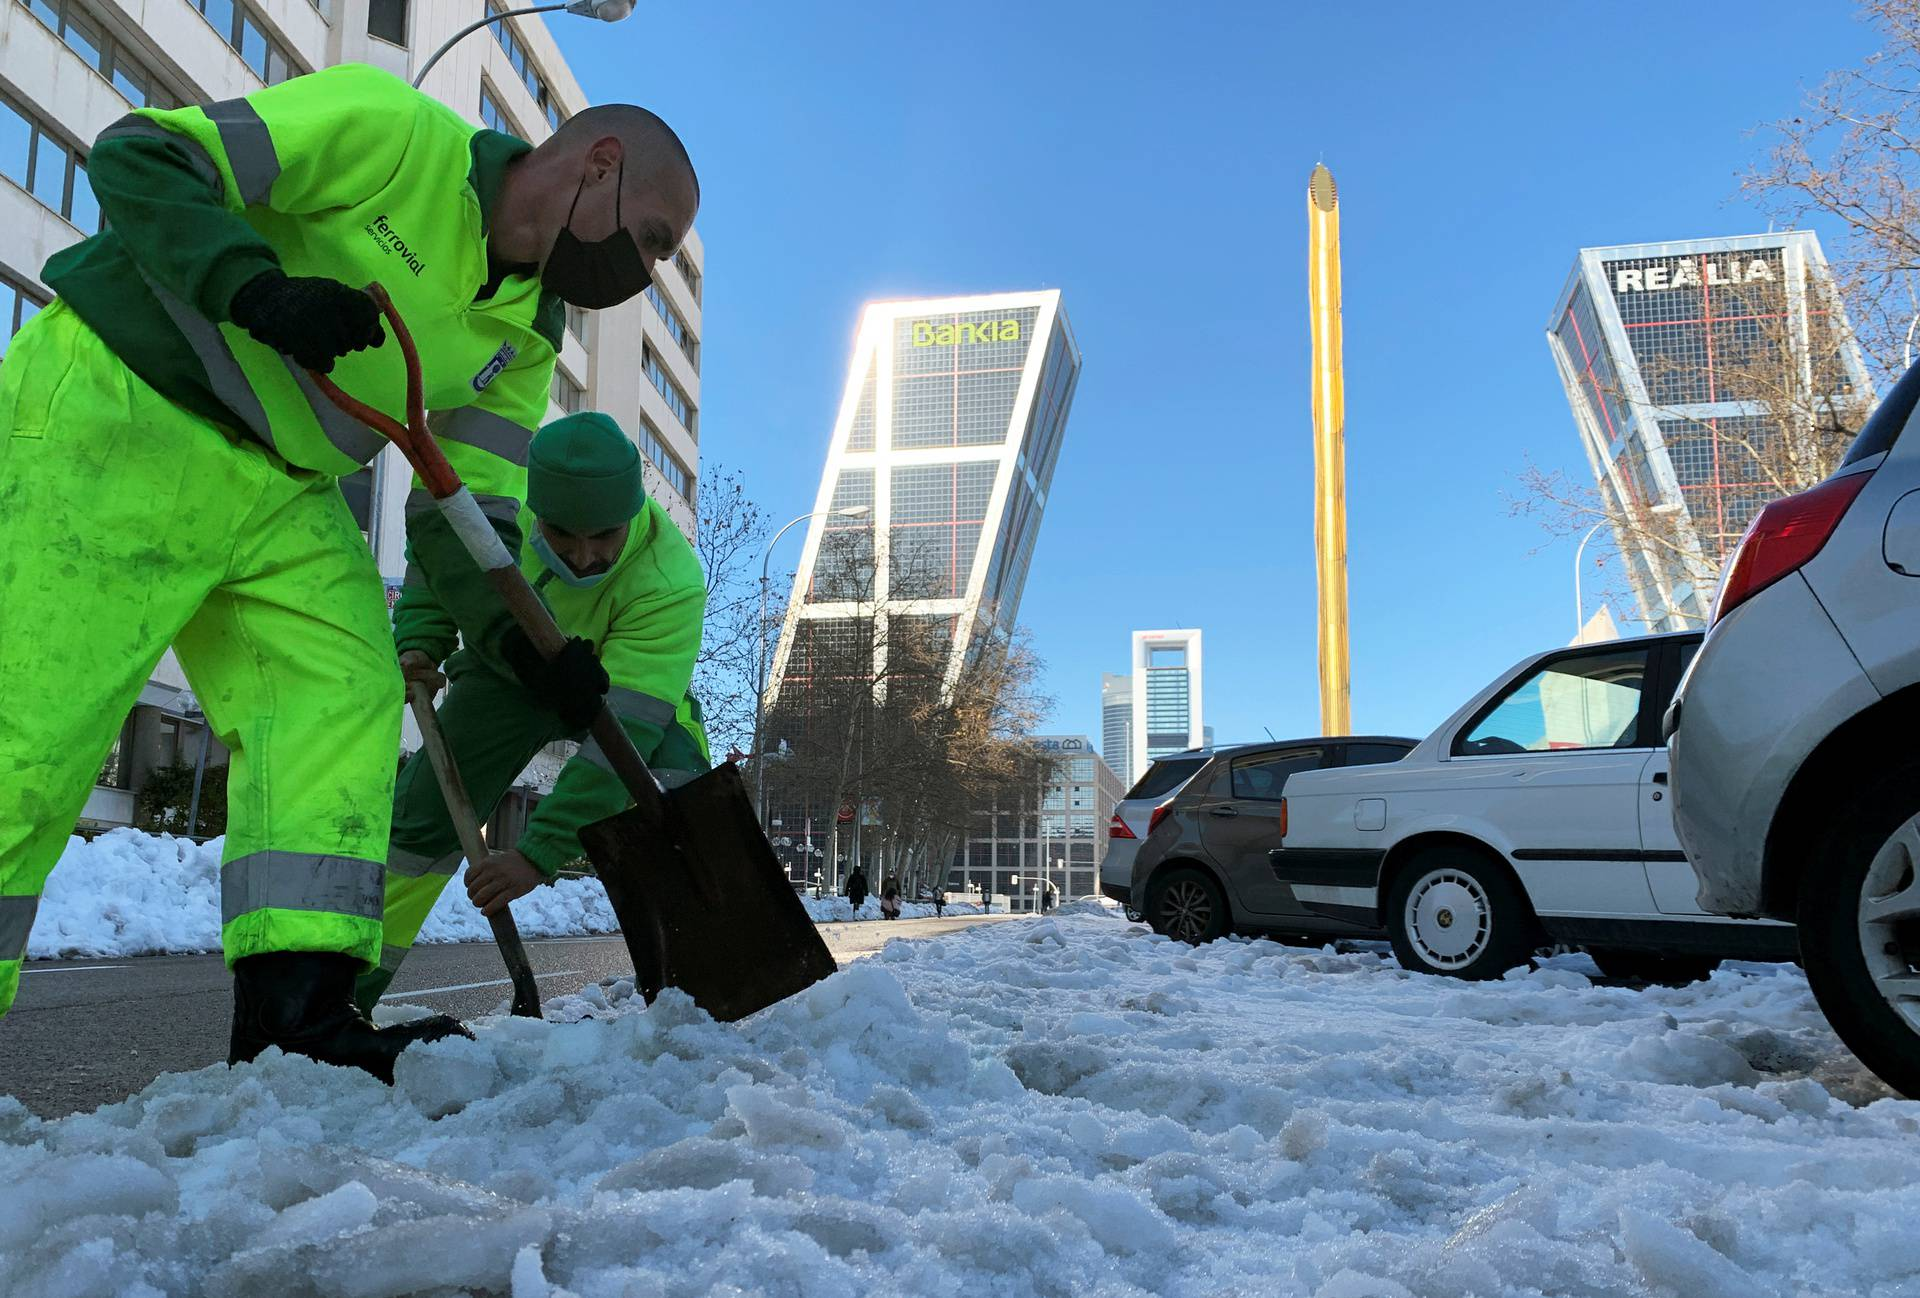 Workers shovel snow in front of headquarters of Spanish lenders Bankia after heavy snowfall in Madrid